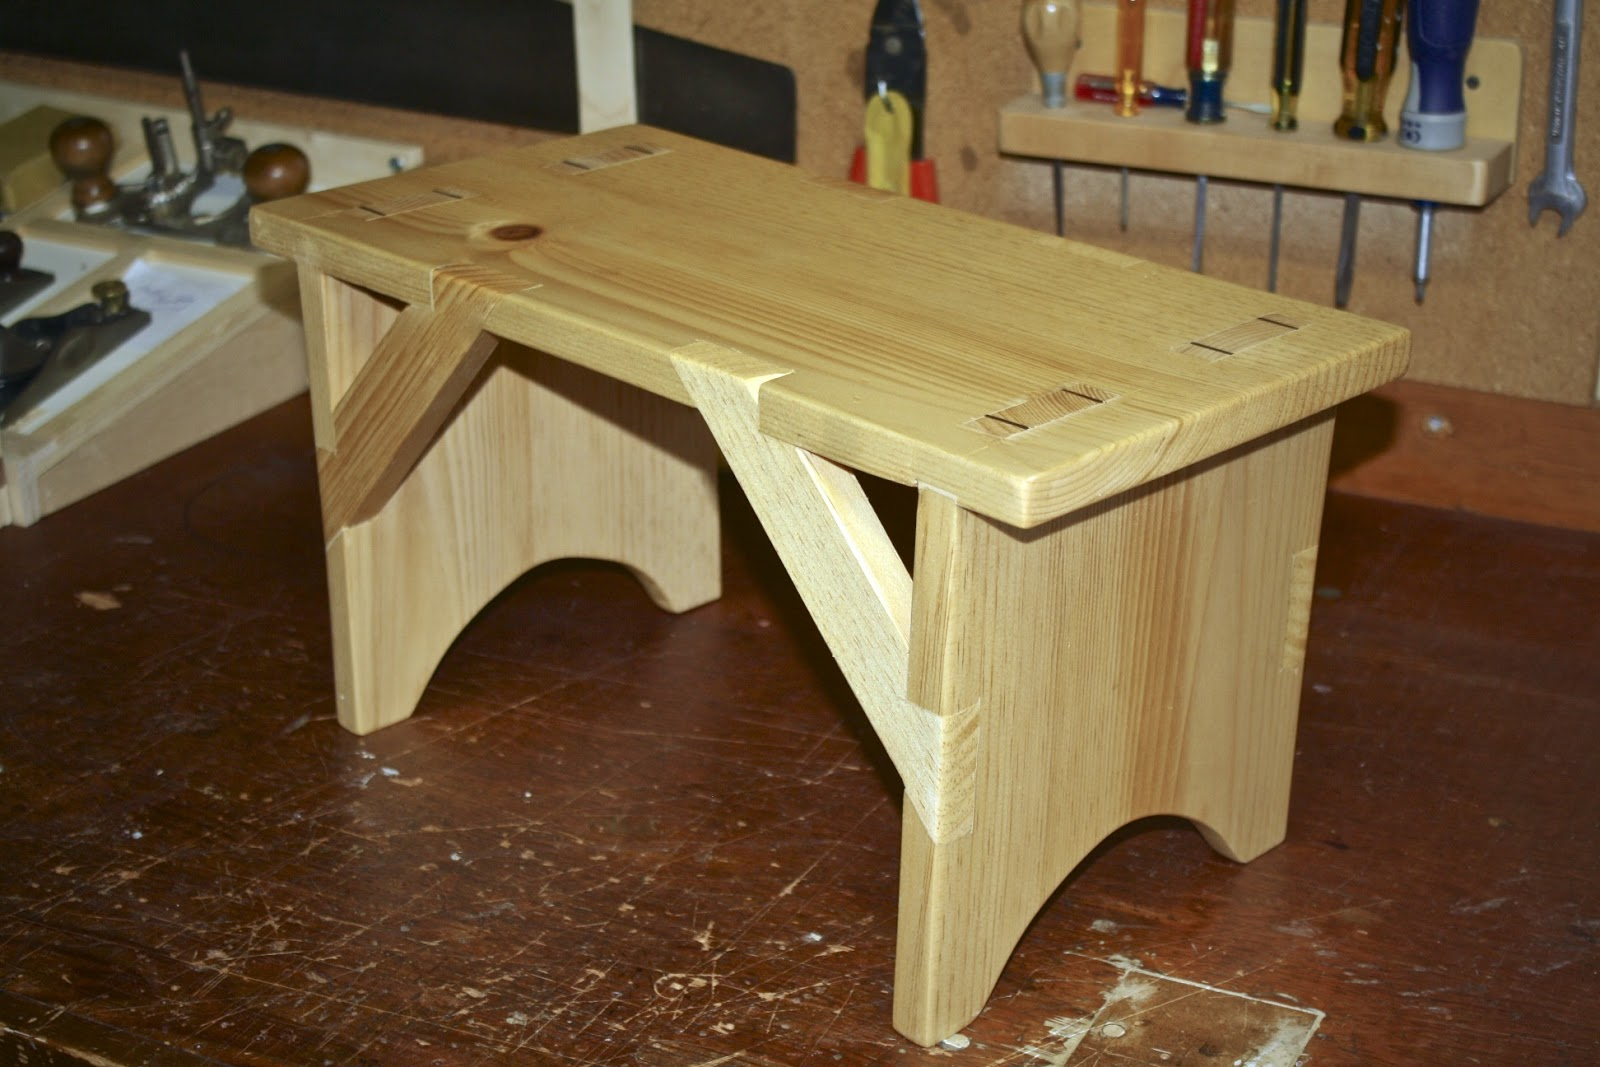 Alexander Woodworks: Shaker Bench Built with Hand Tools